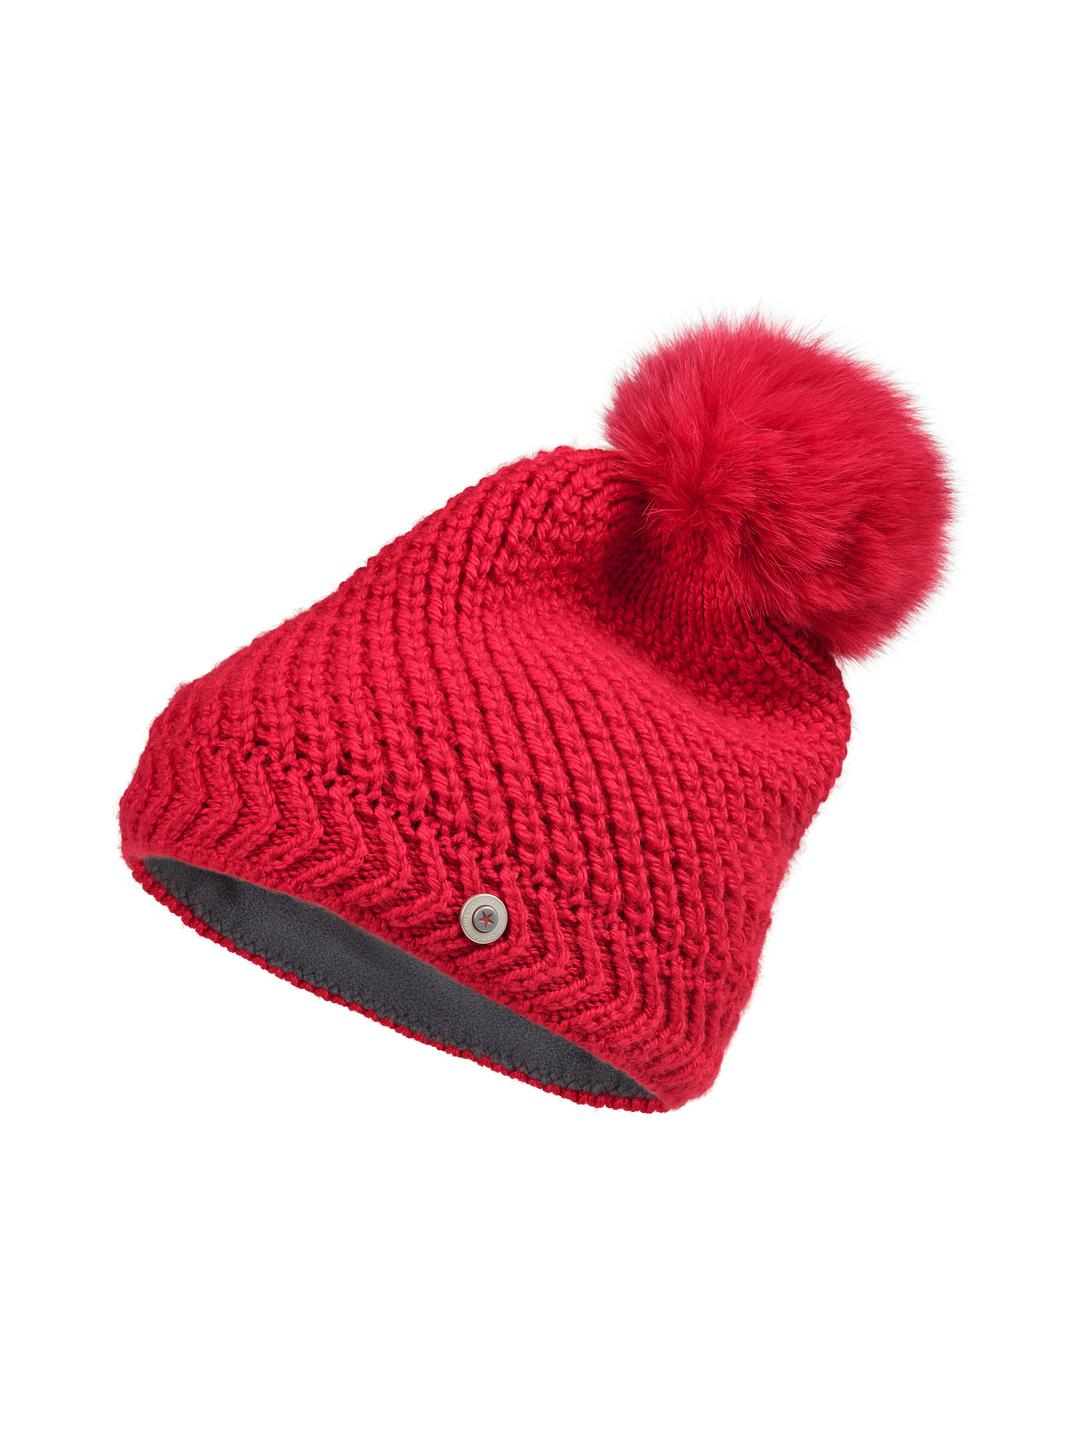 98eae306ea55a Bogner Lea Wool Beanie in Red - Lyst